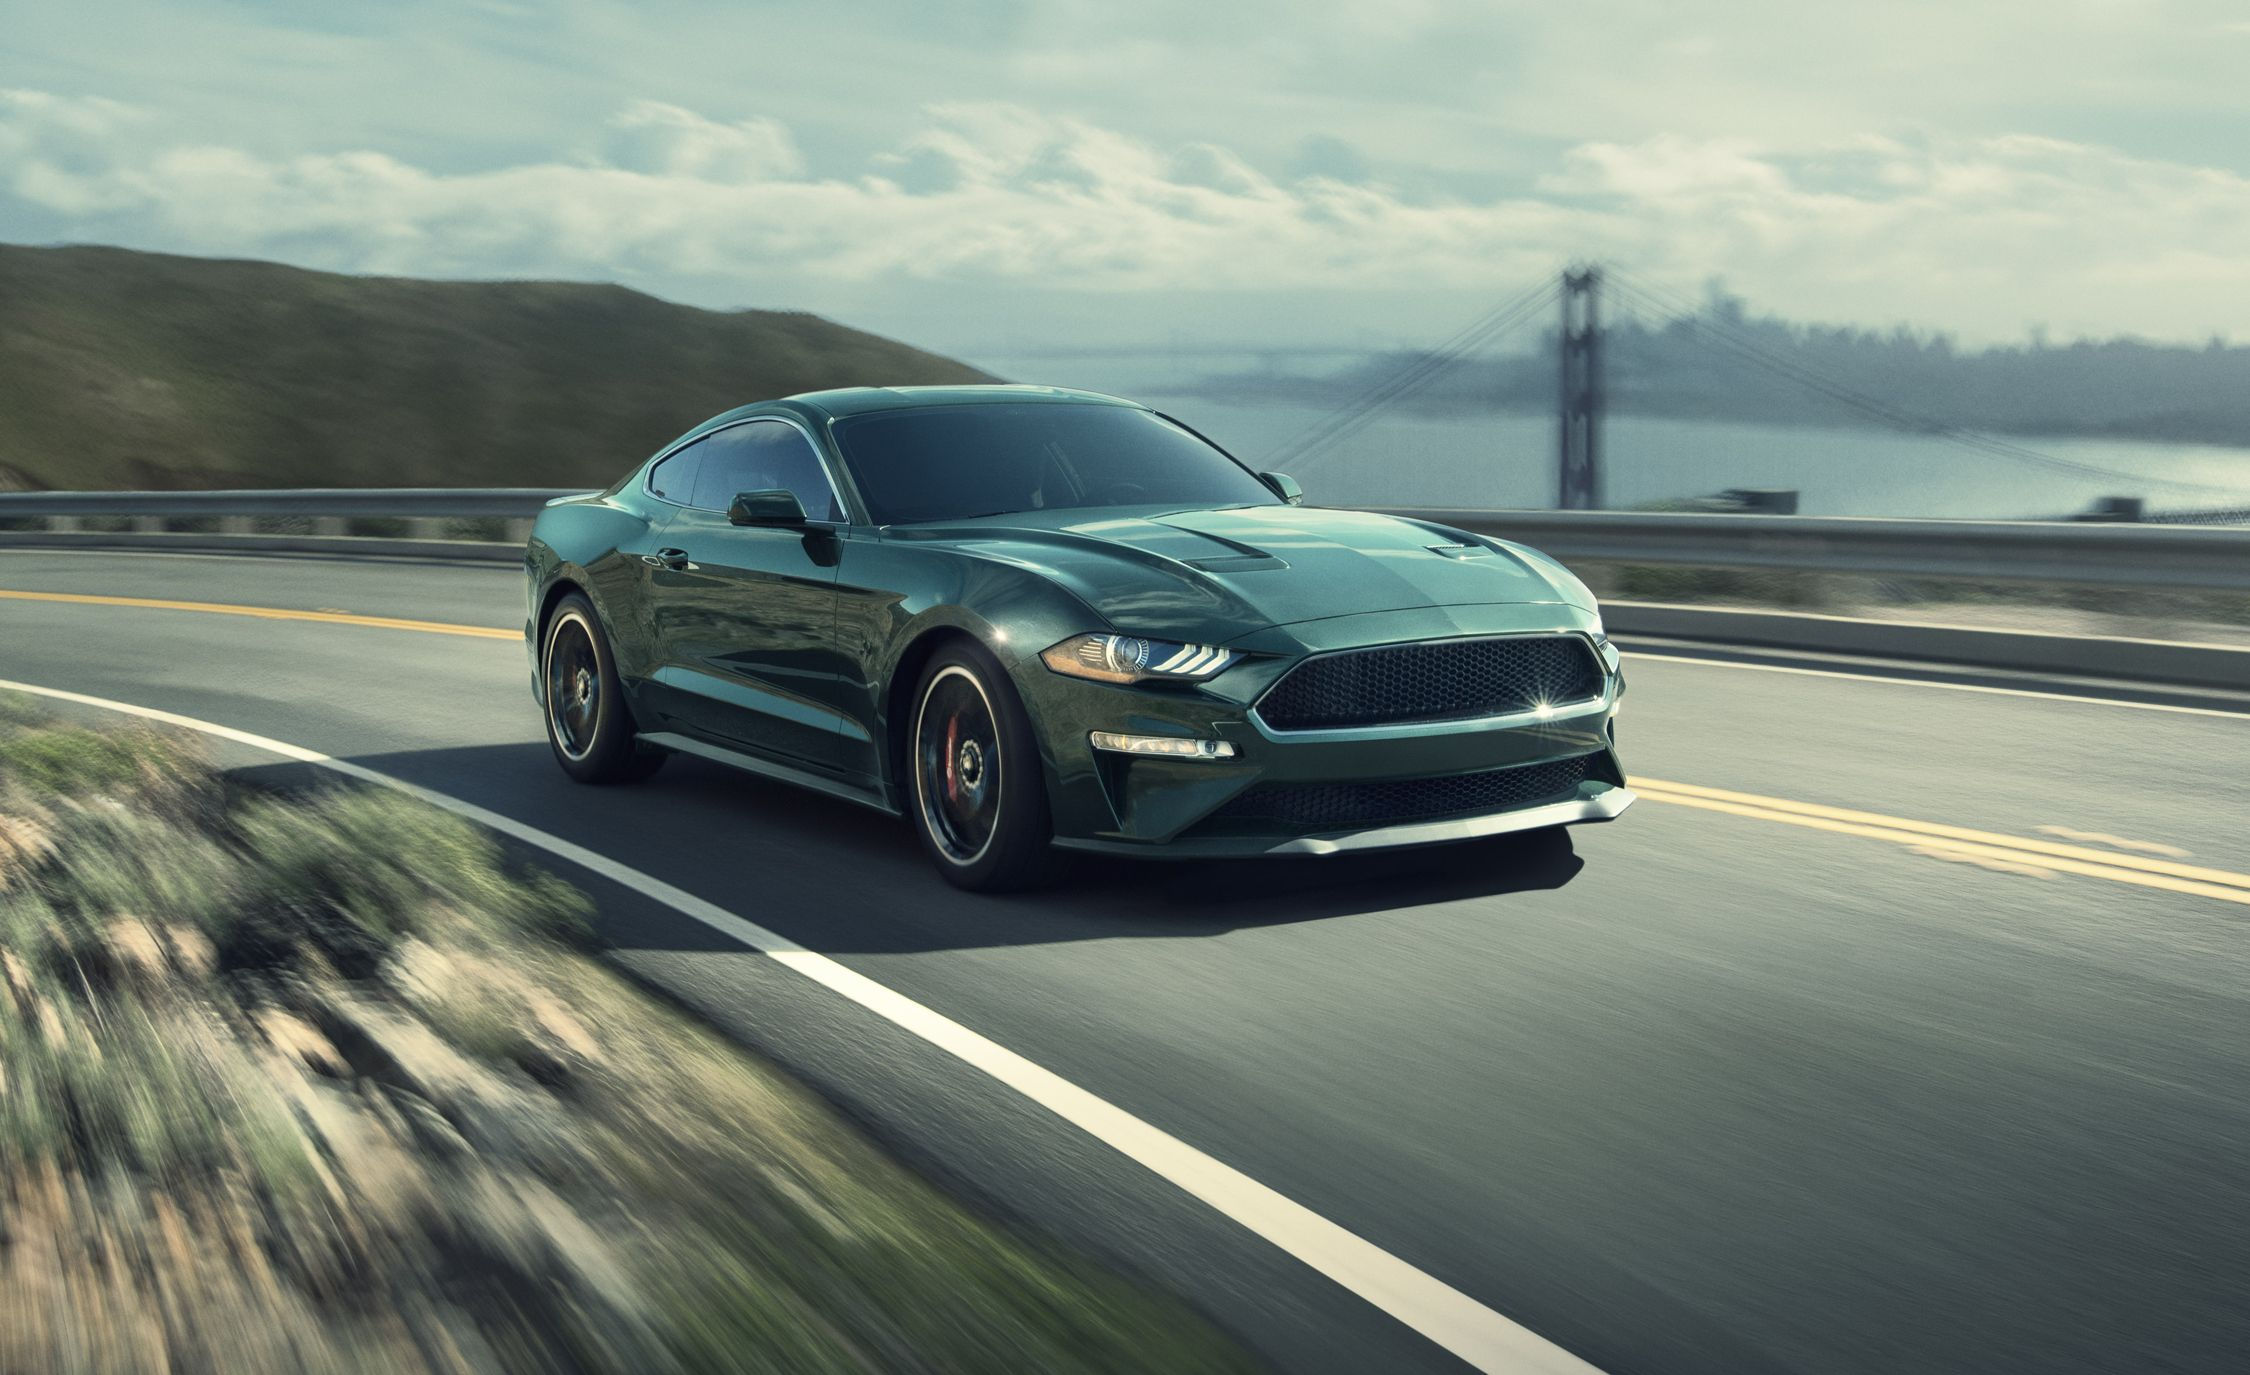 2019 ford mustang bullitt driven riding 480 loud horses review